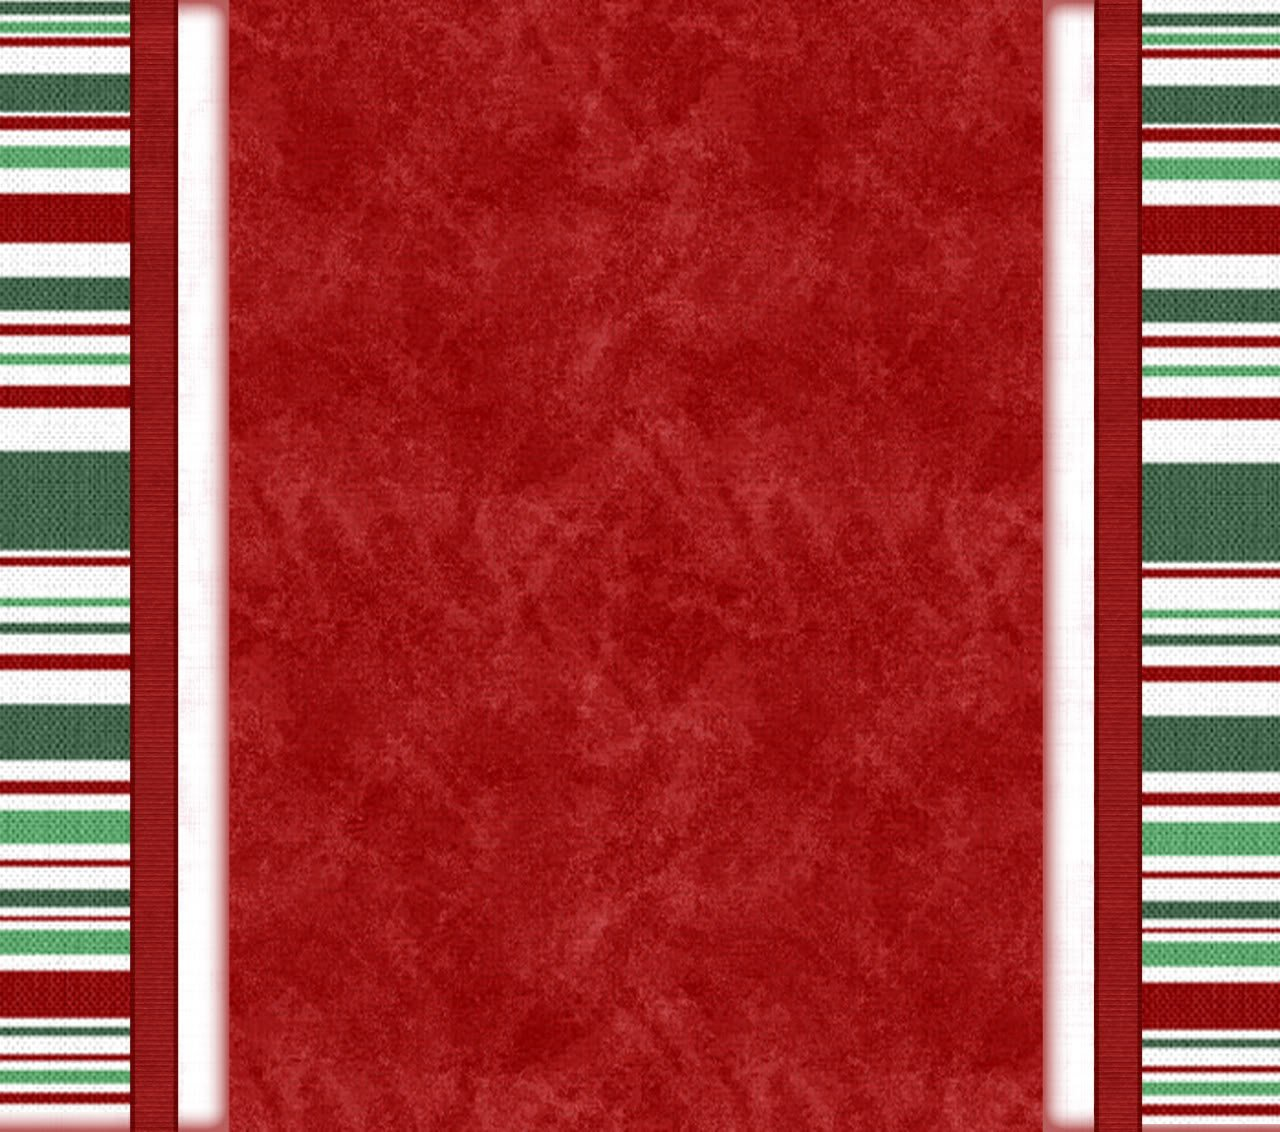 Free Download Red And Green Christmas Background Wallpaper Images